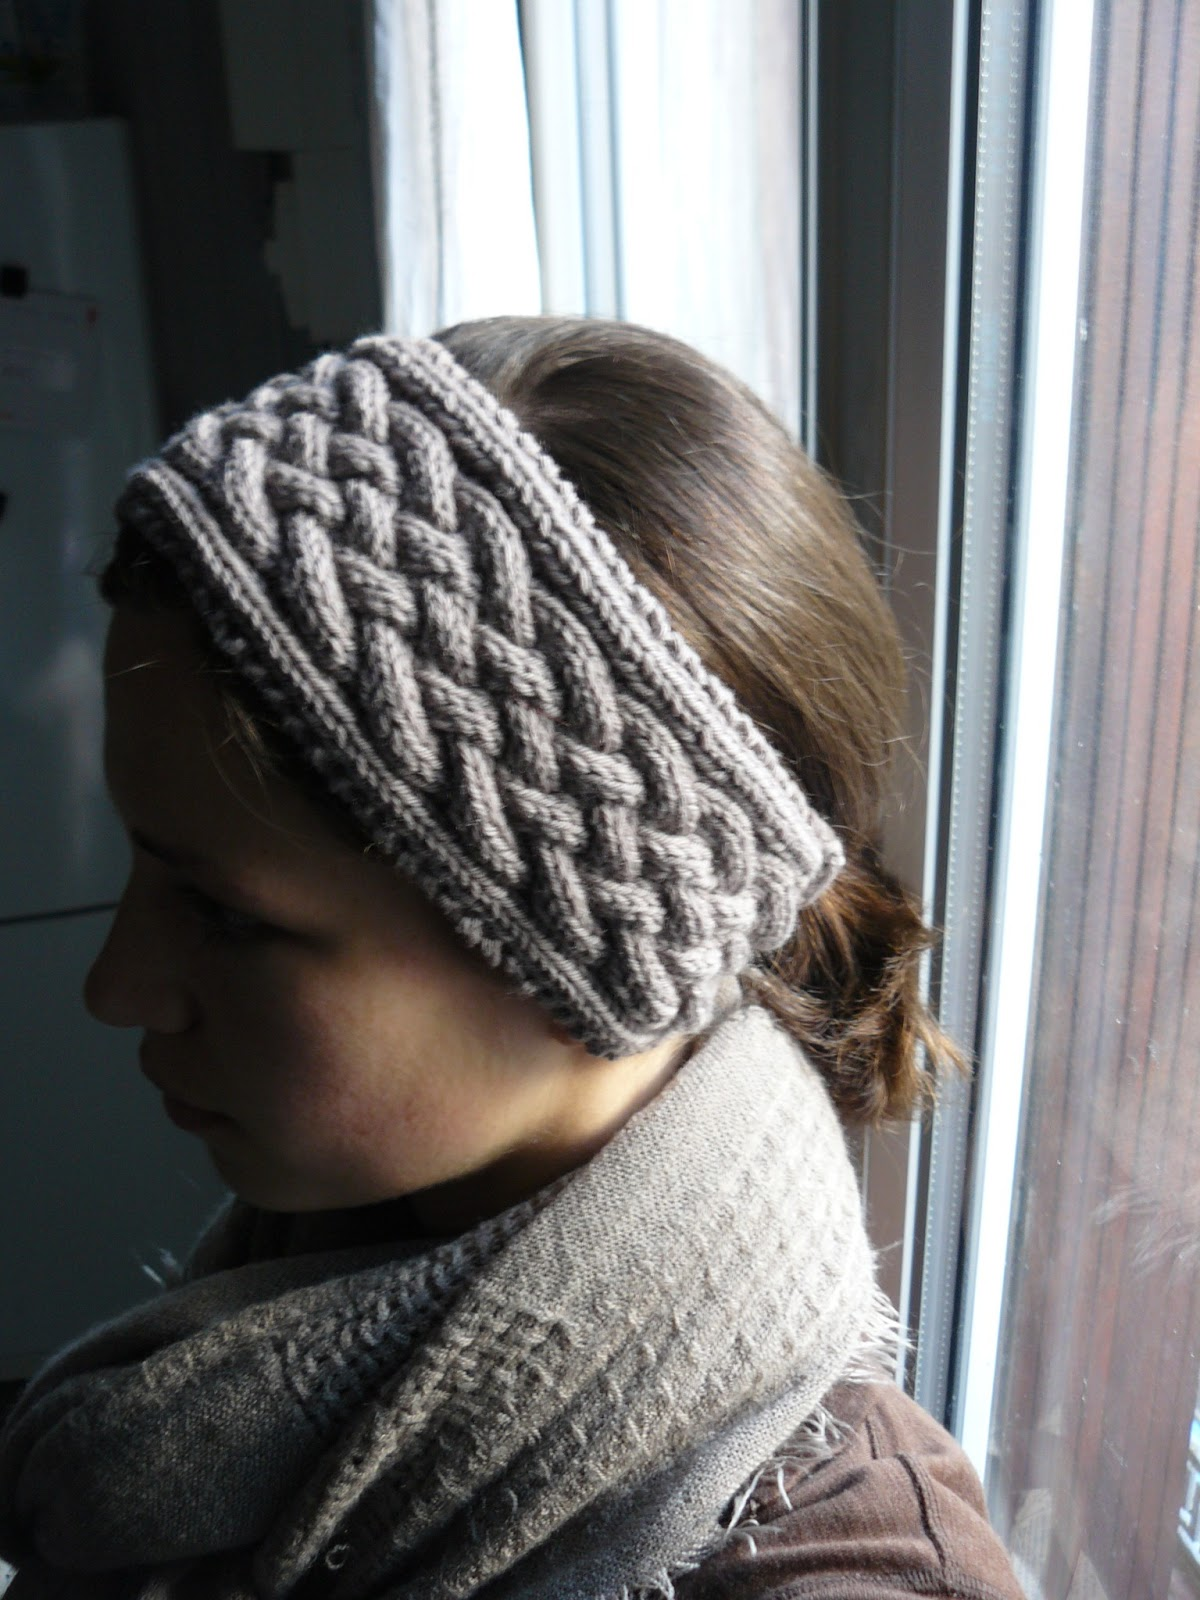 Cable Knit Headband Free Pattern : The Woven Home: Knitting Projects: Cabled Headband